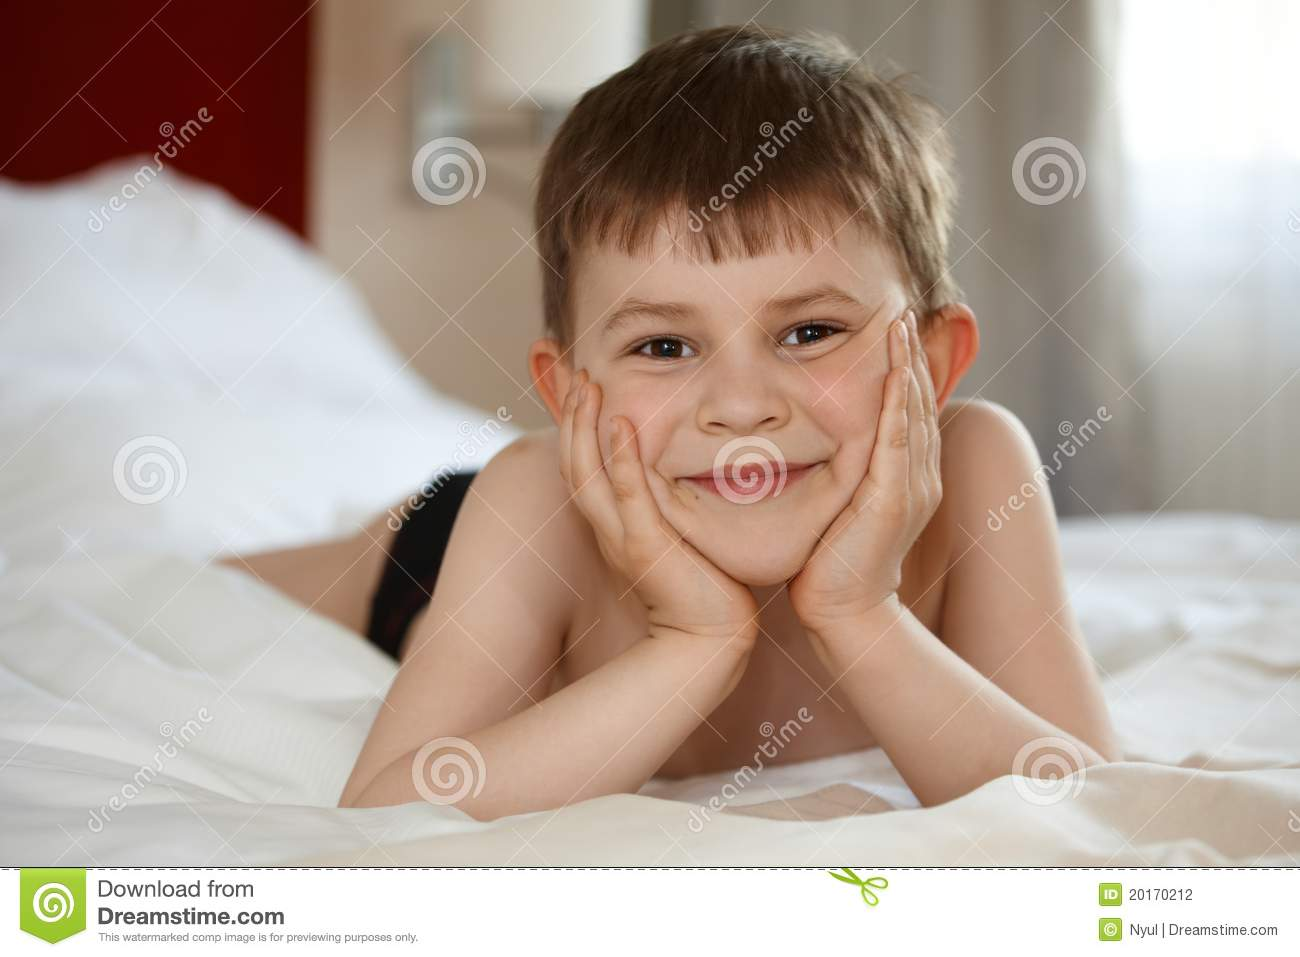 Bedroom Camera Cute Little Kid Smiling In Bed Stock Photography Image